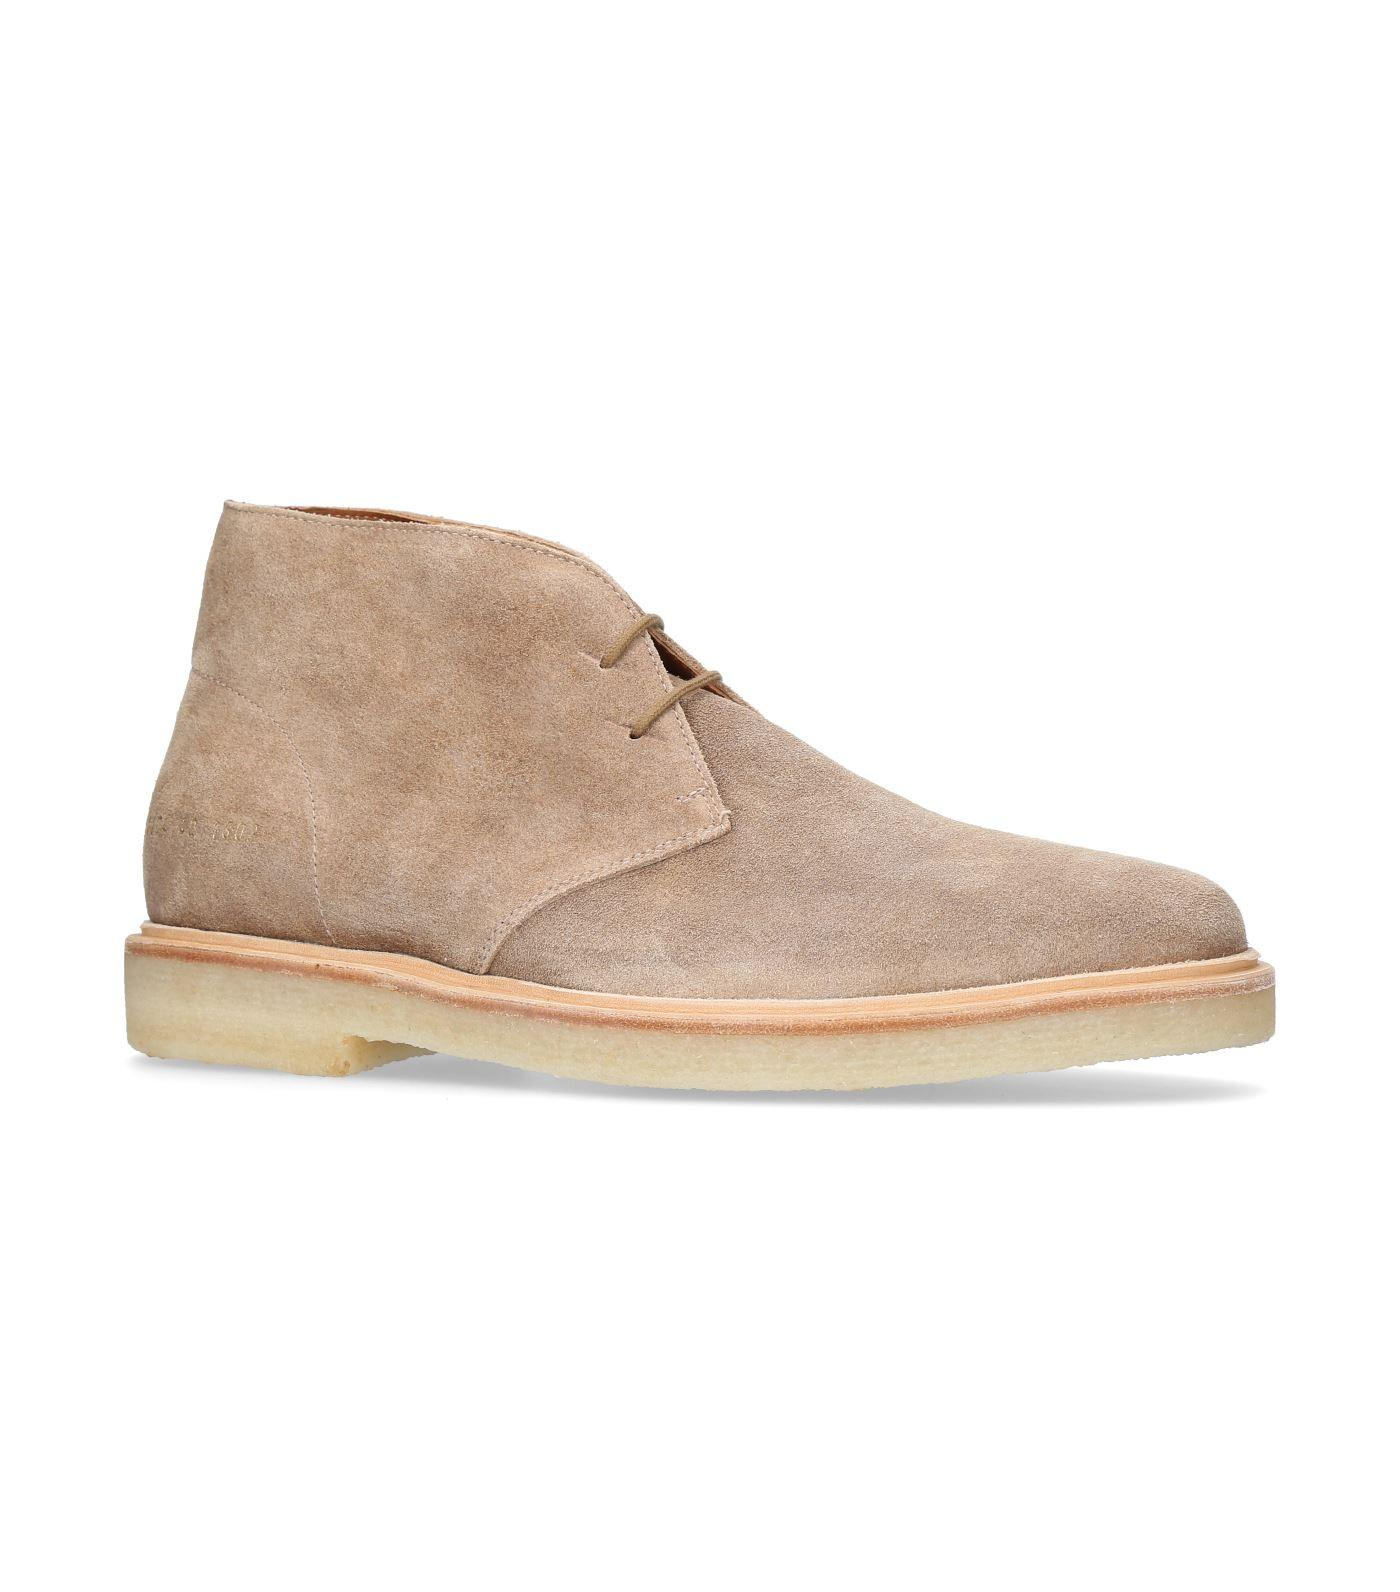 Common Projects Chukka Suede Boots In Beige